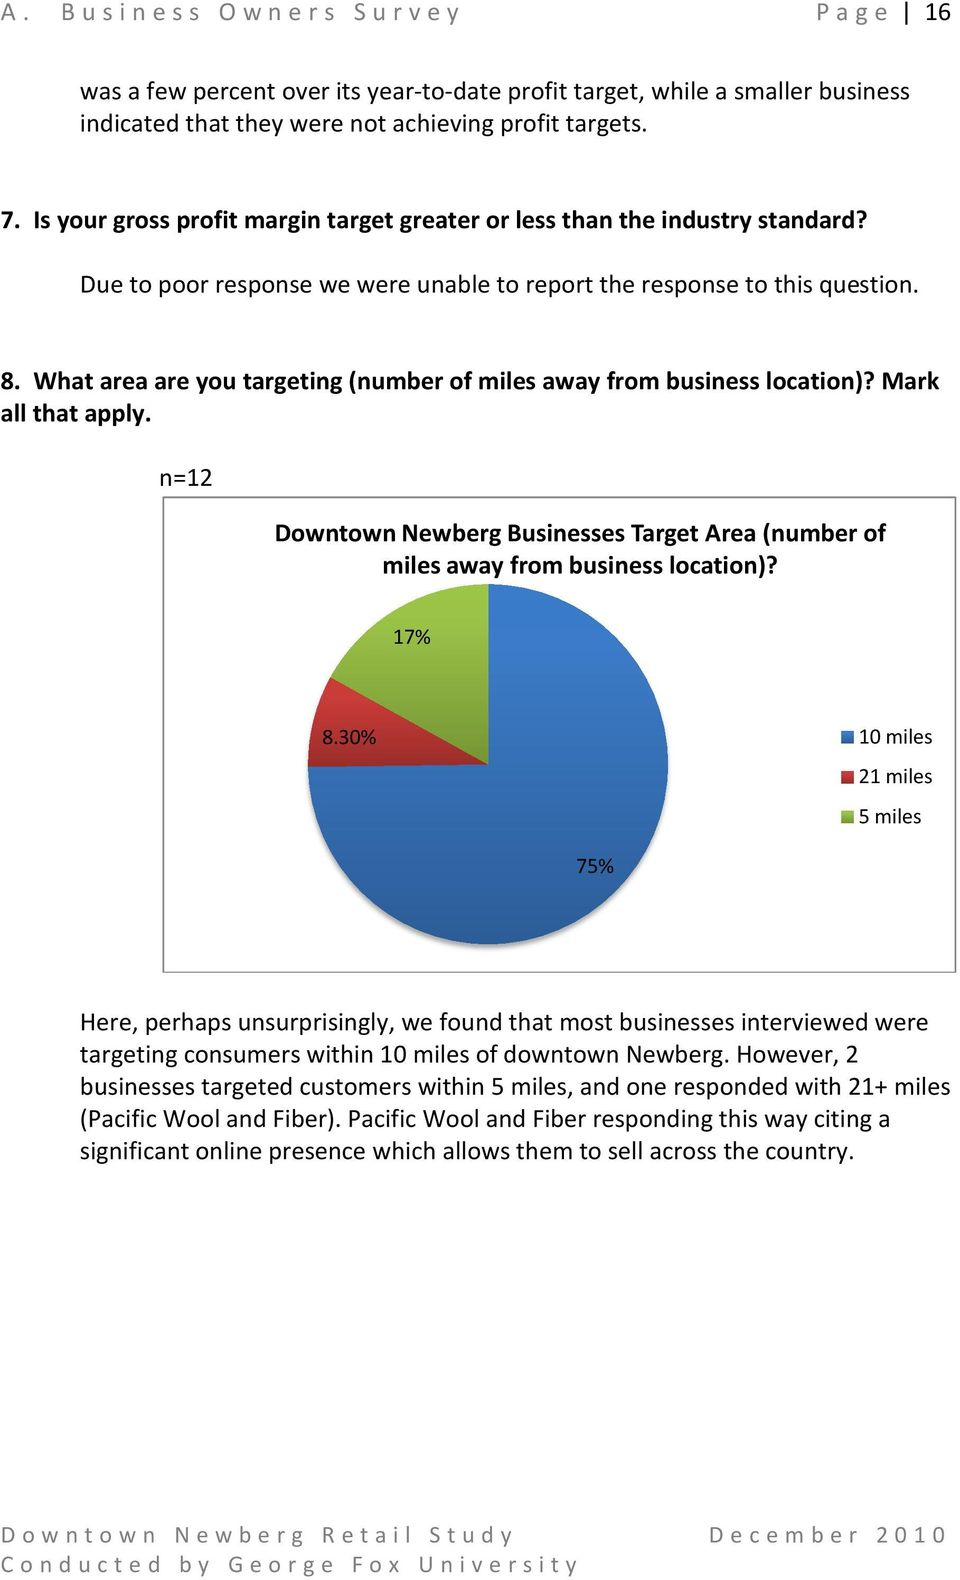 What area are you targeting (number of miles away from business location)? Mark all that apply. n=12 Downtown Newberg Businesses Target Area (number of miles away from business location)? 17% 8.